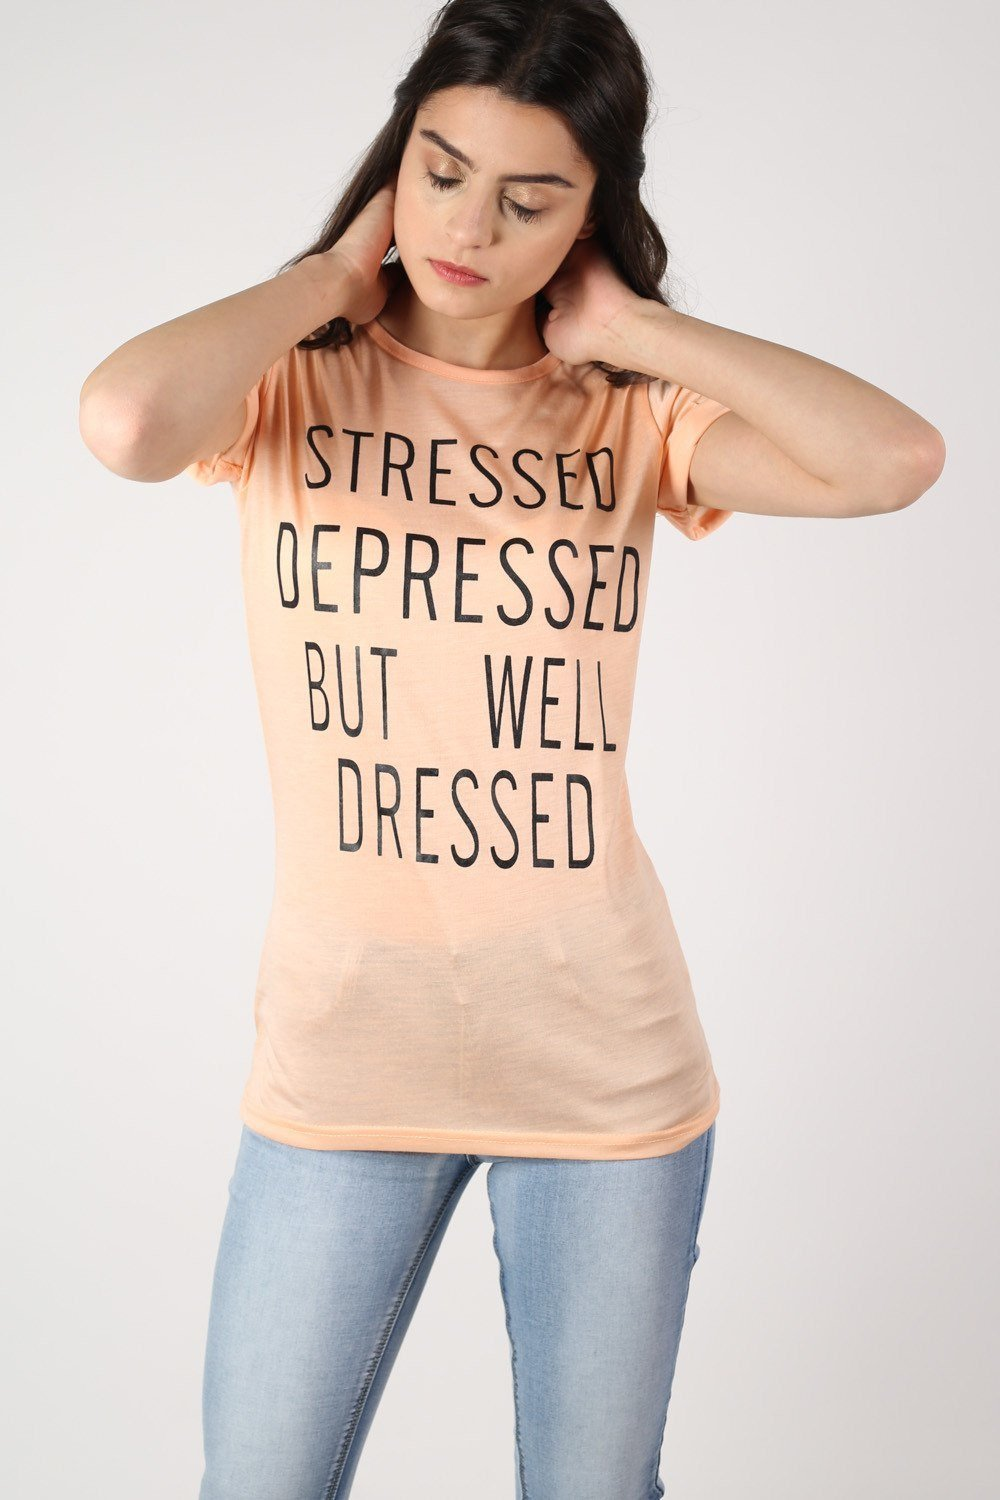 Well Dressed Slogan T-Shirt in Nude 1